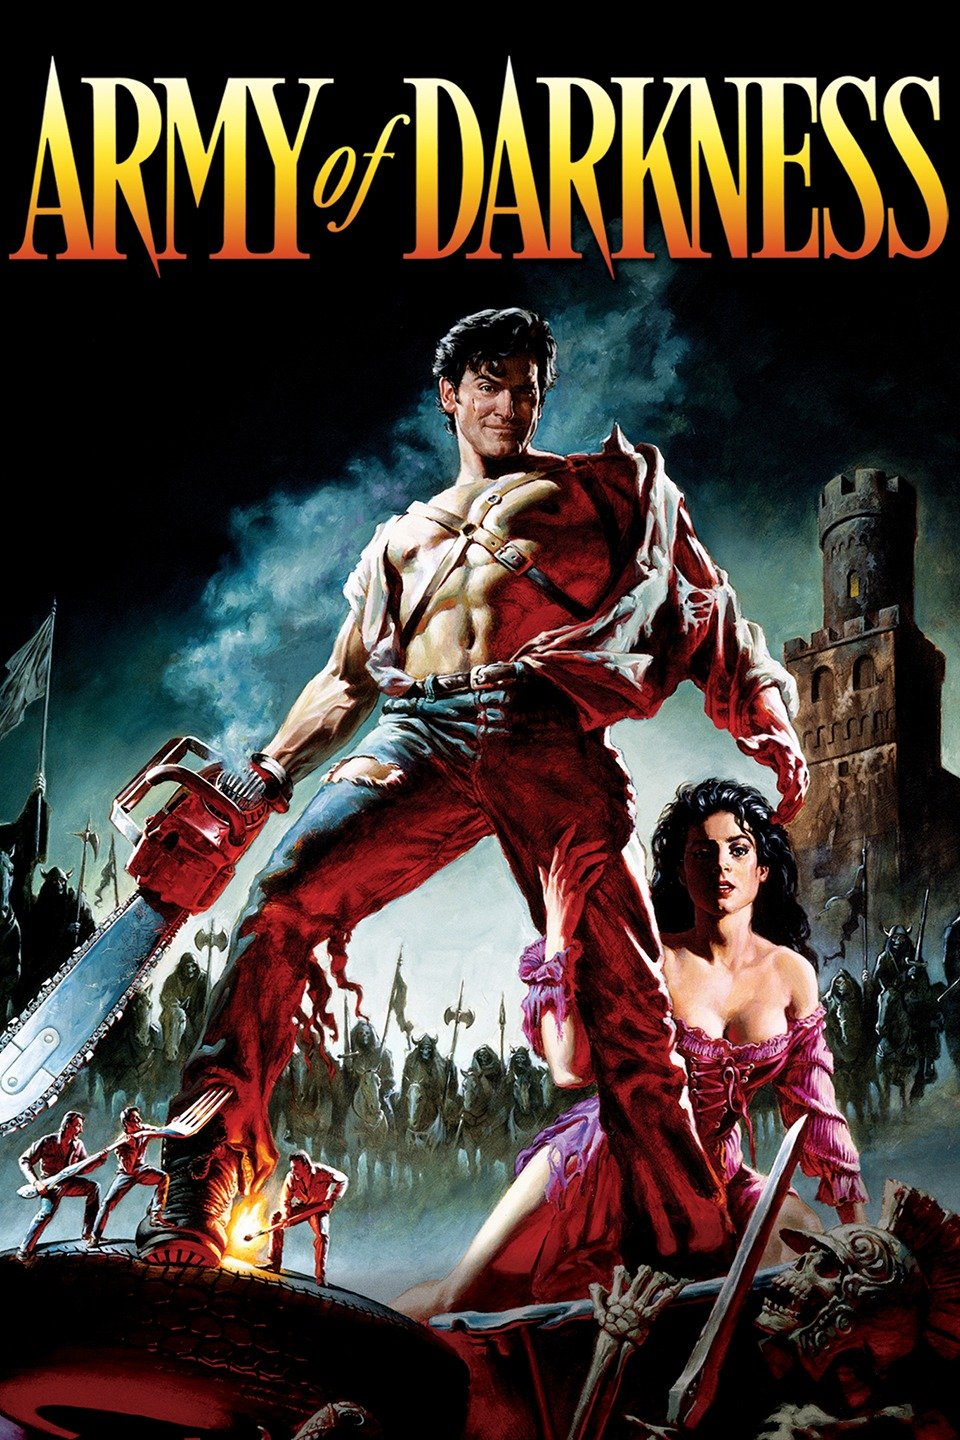 Evil Dead III: Army of Darkness 1993